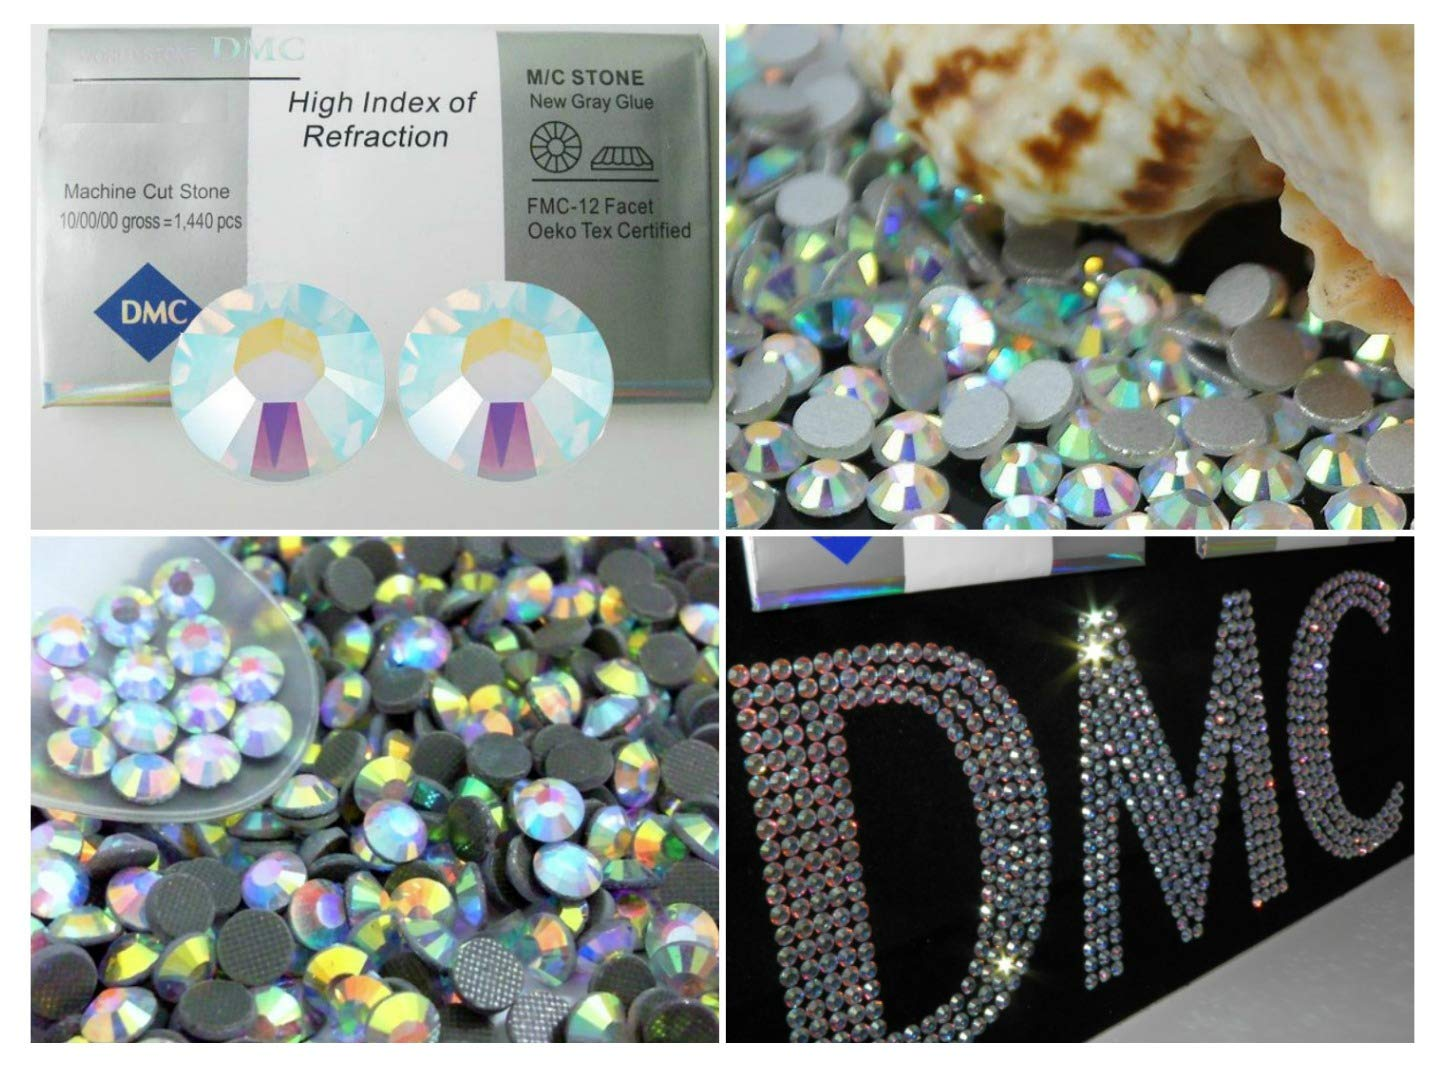 BrillaBenny Strass TERMOADESIVI 1400 Pezzi SS20 / 5MM DmC MC Extra Quality HOTFIX Aurora BOREALE Rhinestone AB Crystal Glass Skating Pattinaggio Danza ABDMC5MM